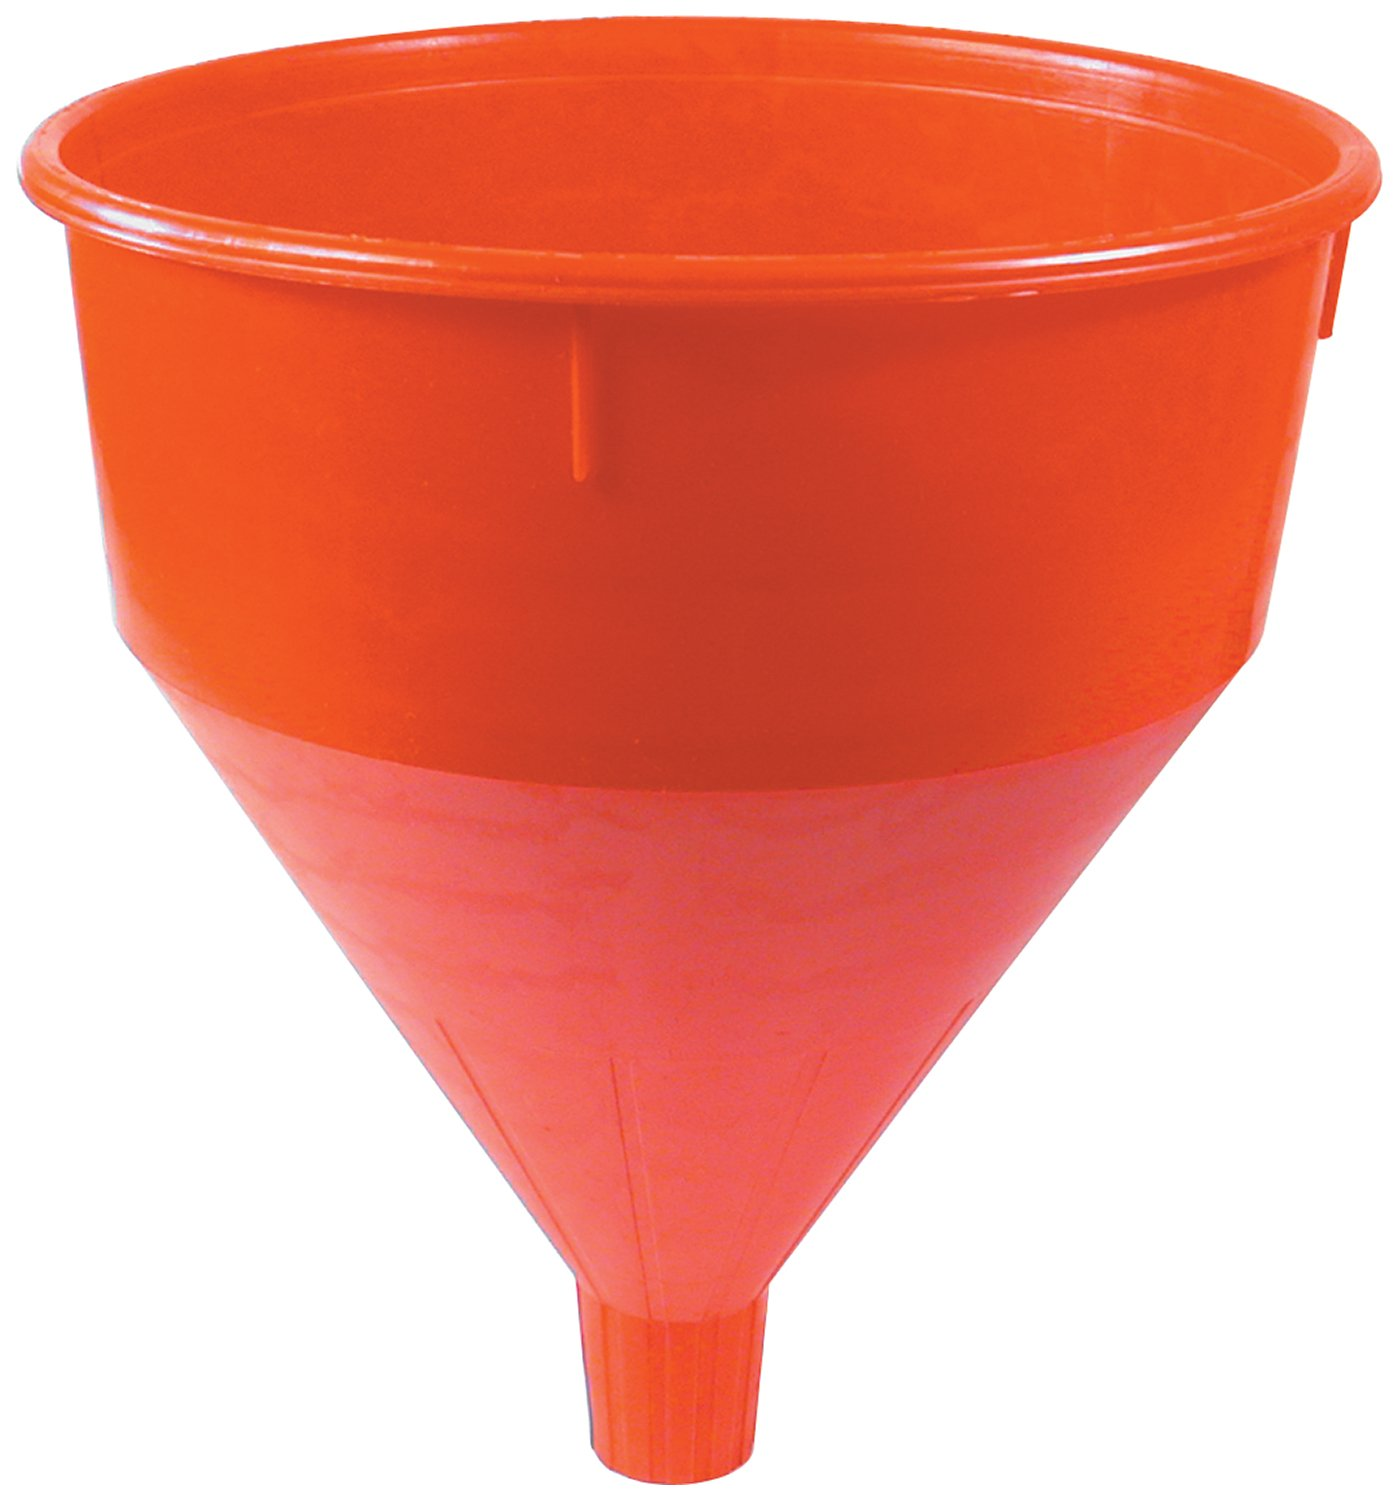 Allstar Performance ALL40100 Funnel with Brass Screen - 6 Quart